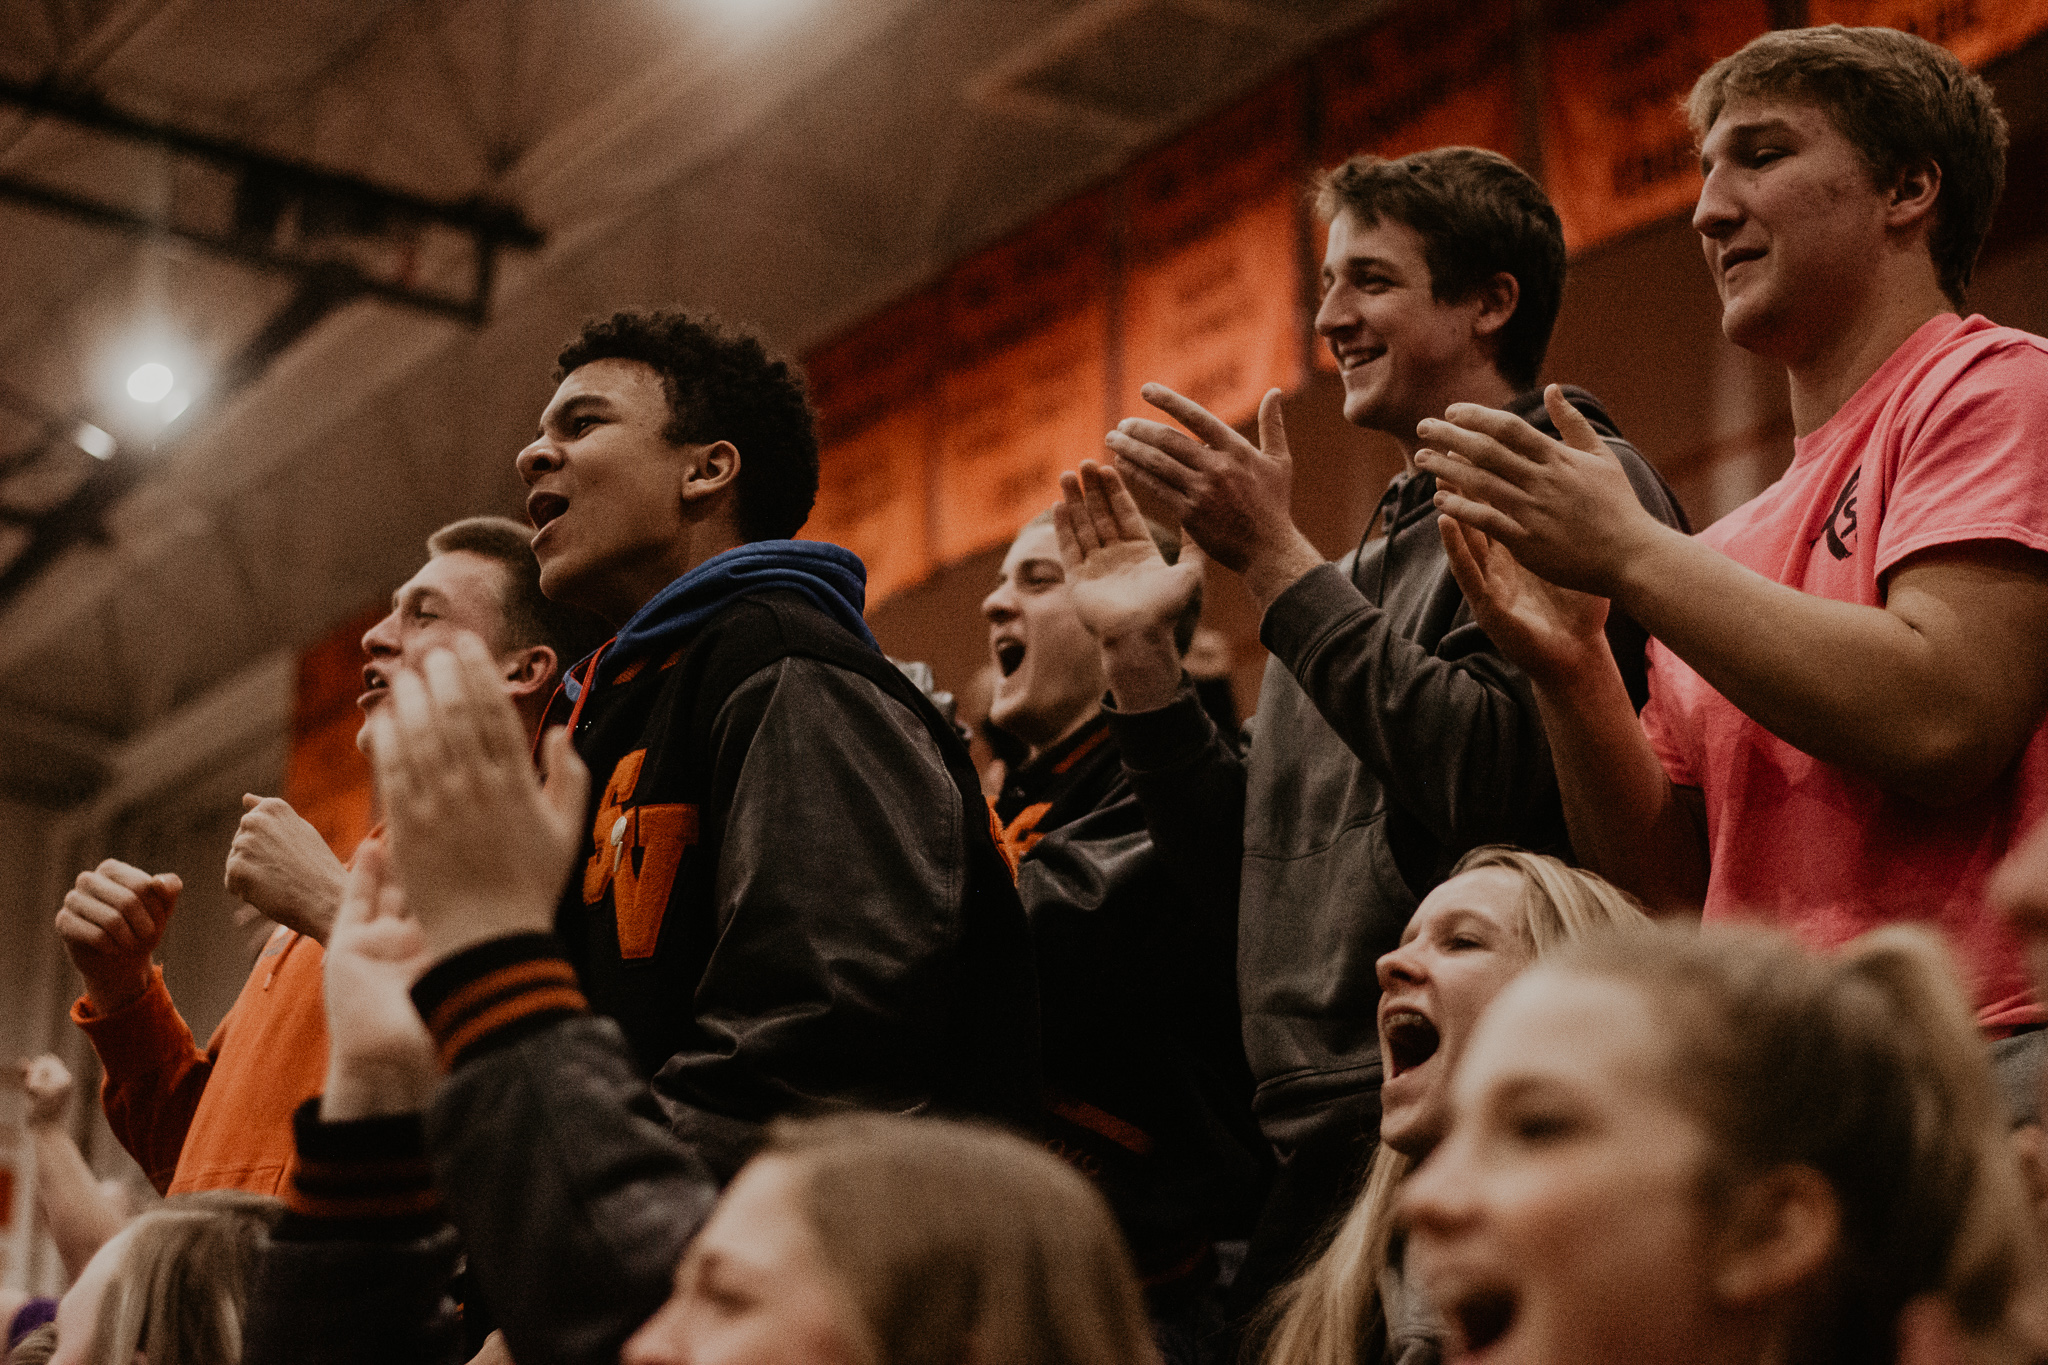 The student section had many moments during the 2-day tournament to stand up and cheer.